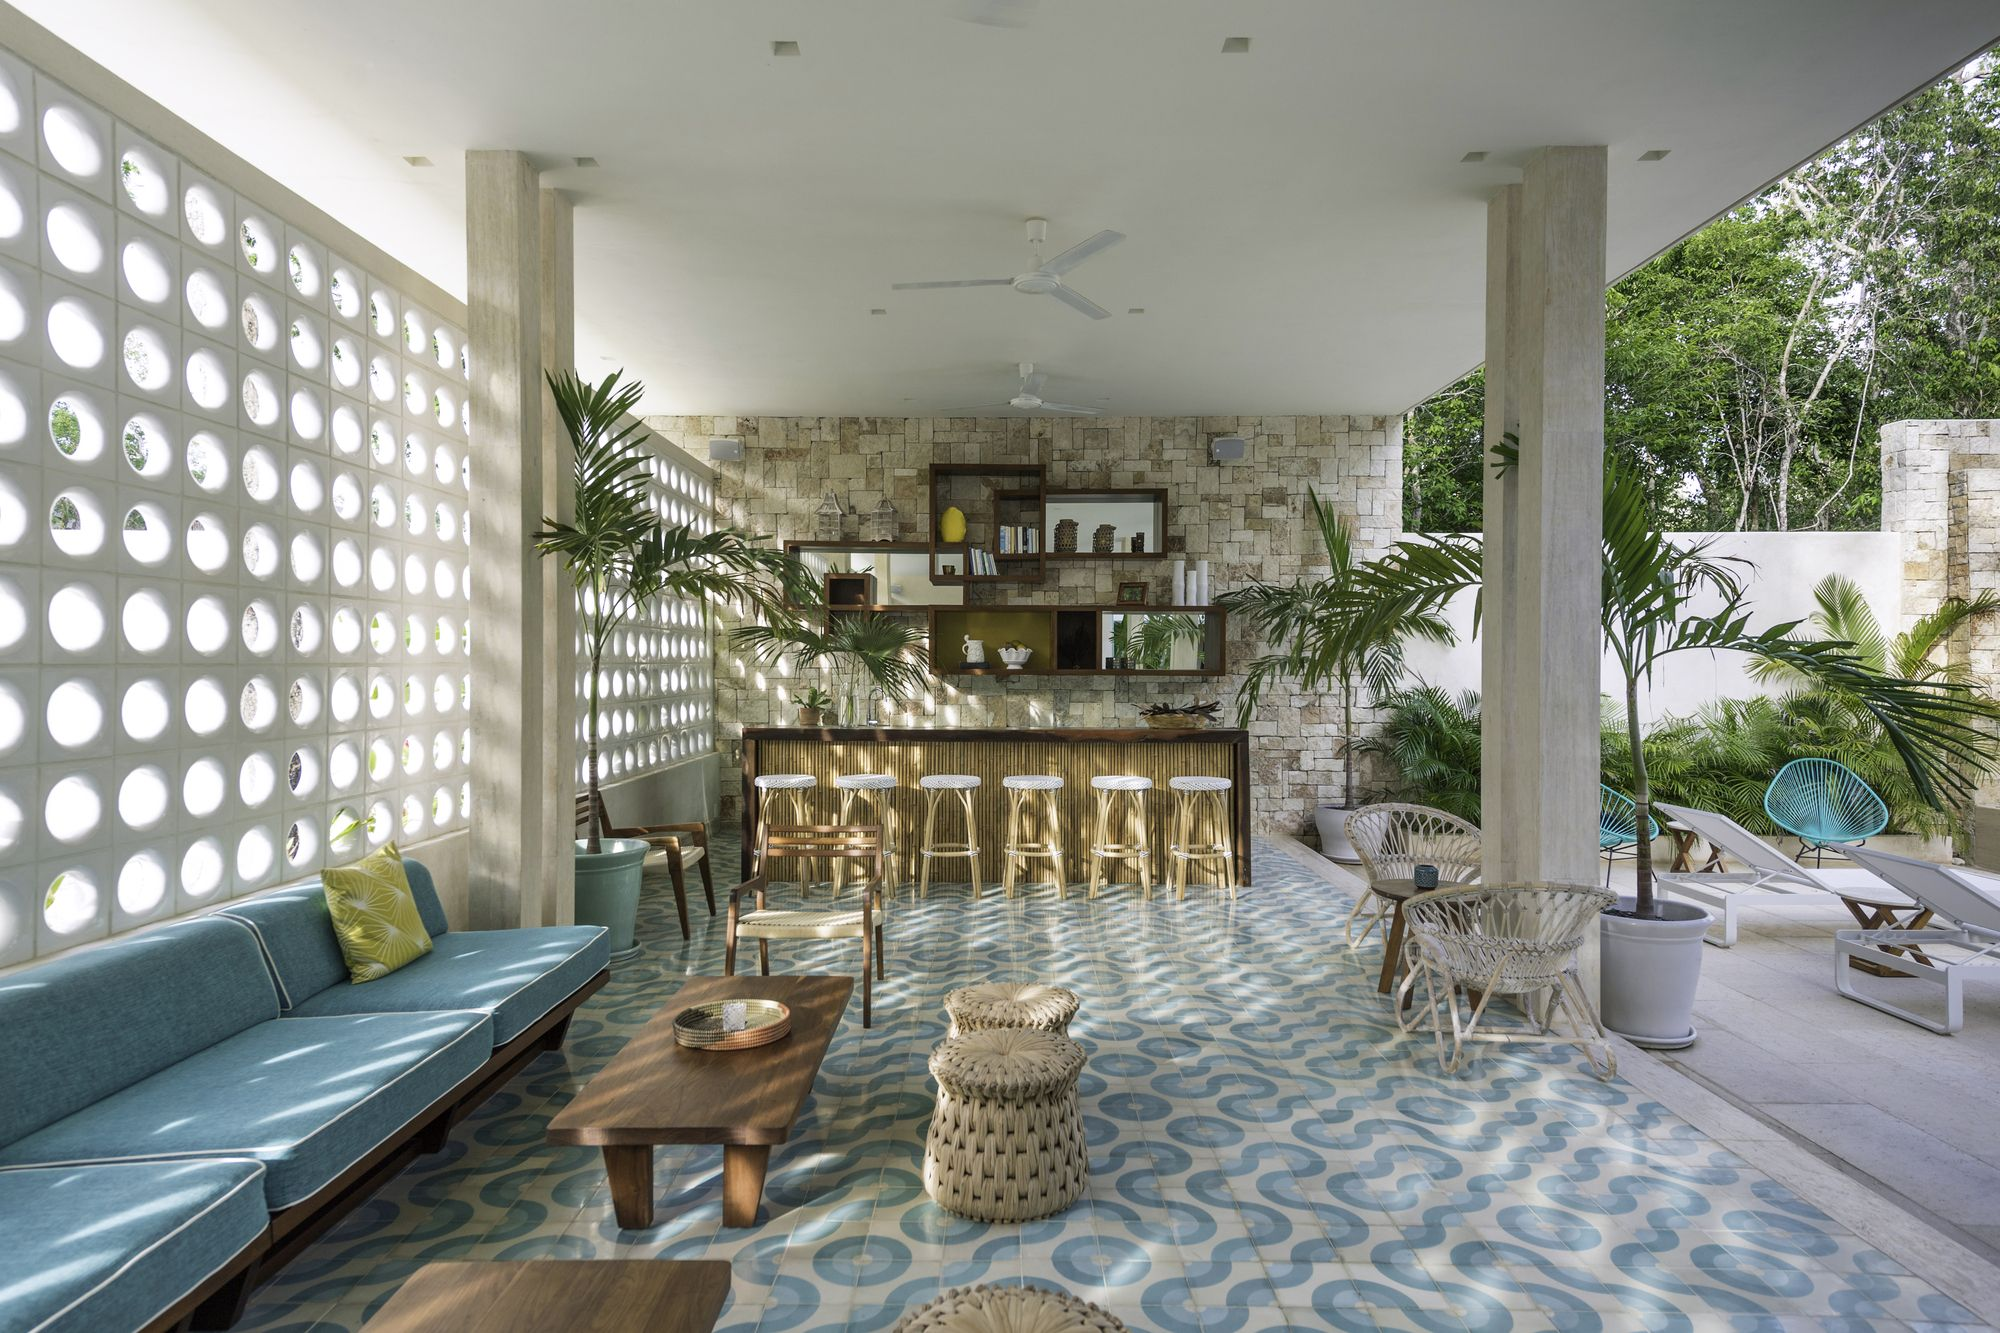 completed in 2016 in tulum mexico images by arturo zavala haag the tiki